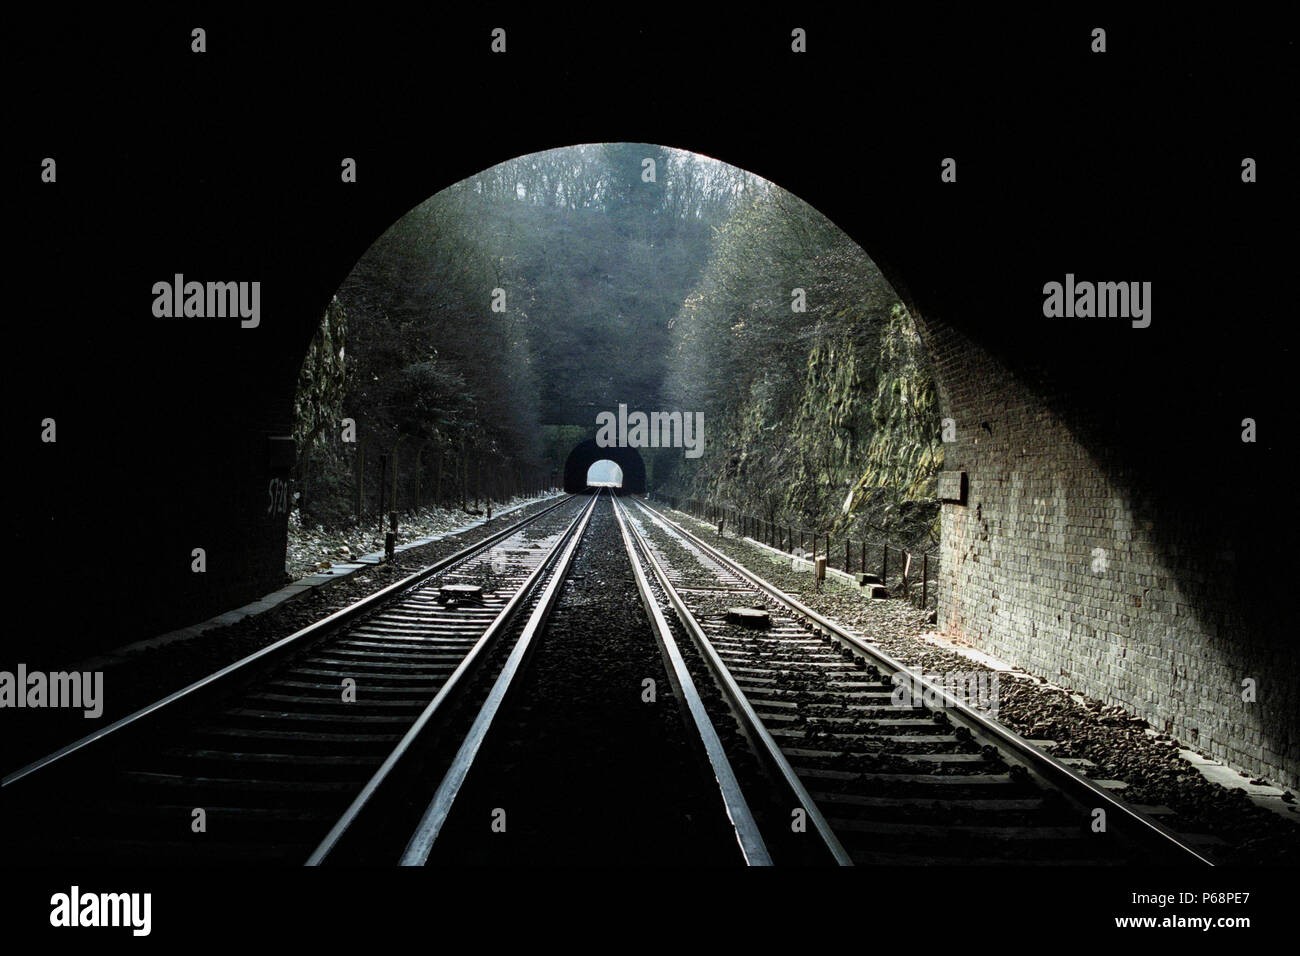 The view from inside Popham tunnel number 1 looking north towards Poham tunnel number 2. 23rd Febrauary 2003. - Stock Image